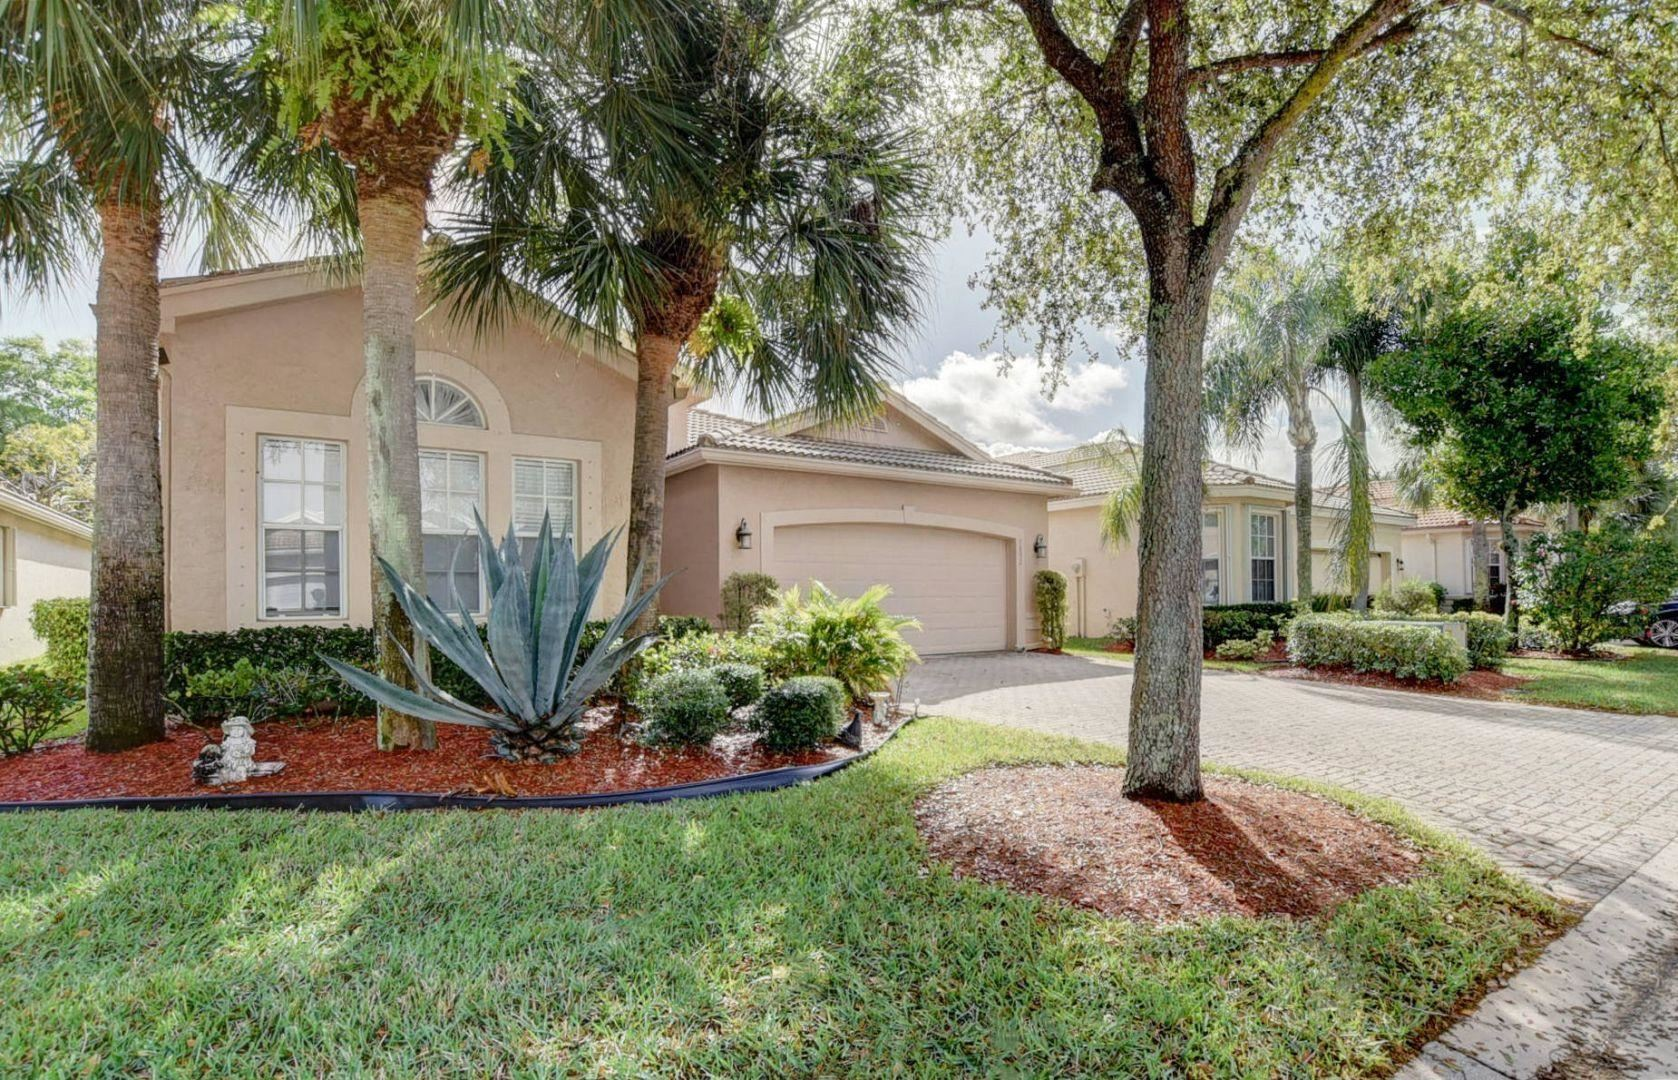 7892 Charlemont Point, Lake Worth, FL 33467 - #: RX-10608548